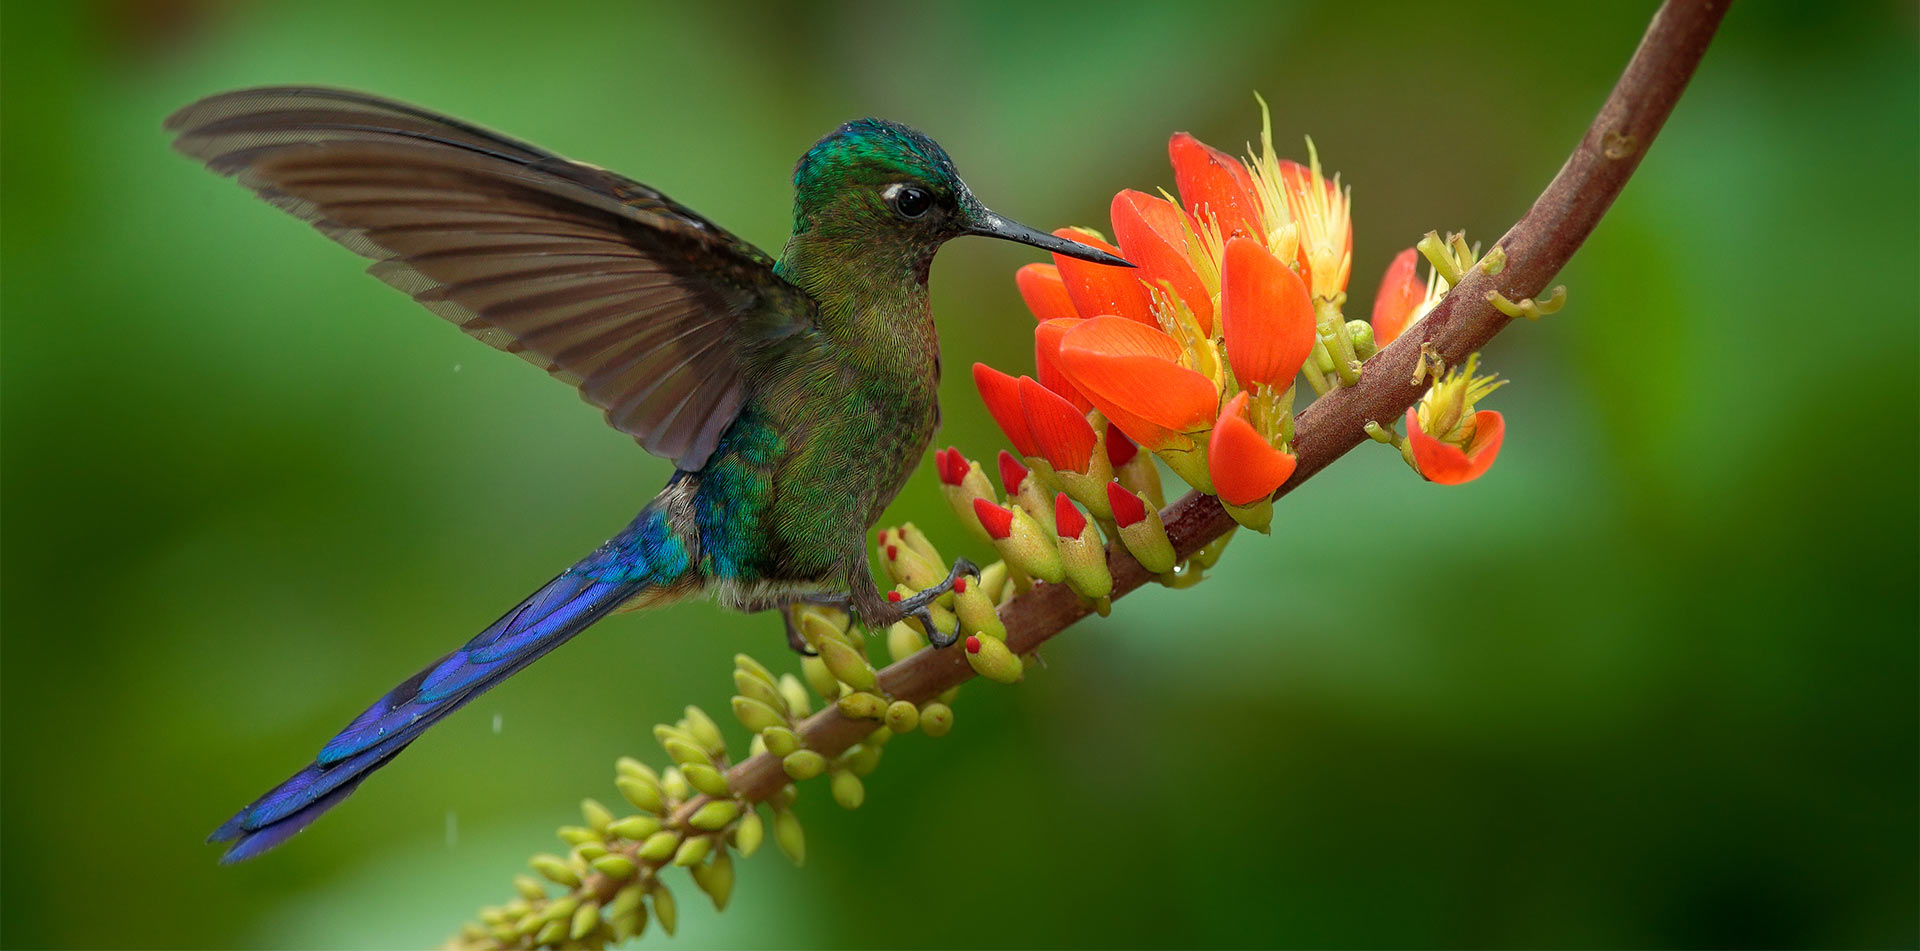 South America Colombia wild hummingbird gathering nectar from flower - luxury vacation destinations